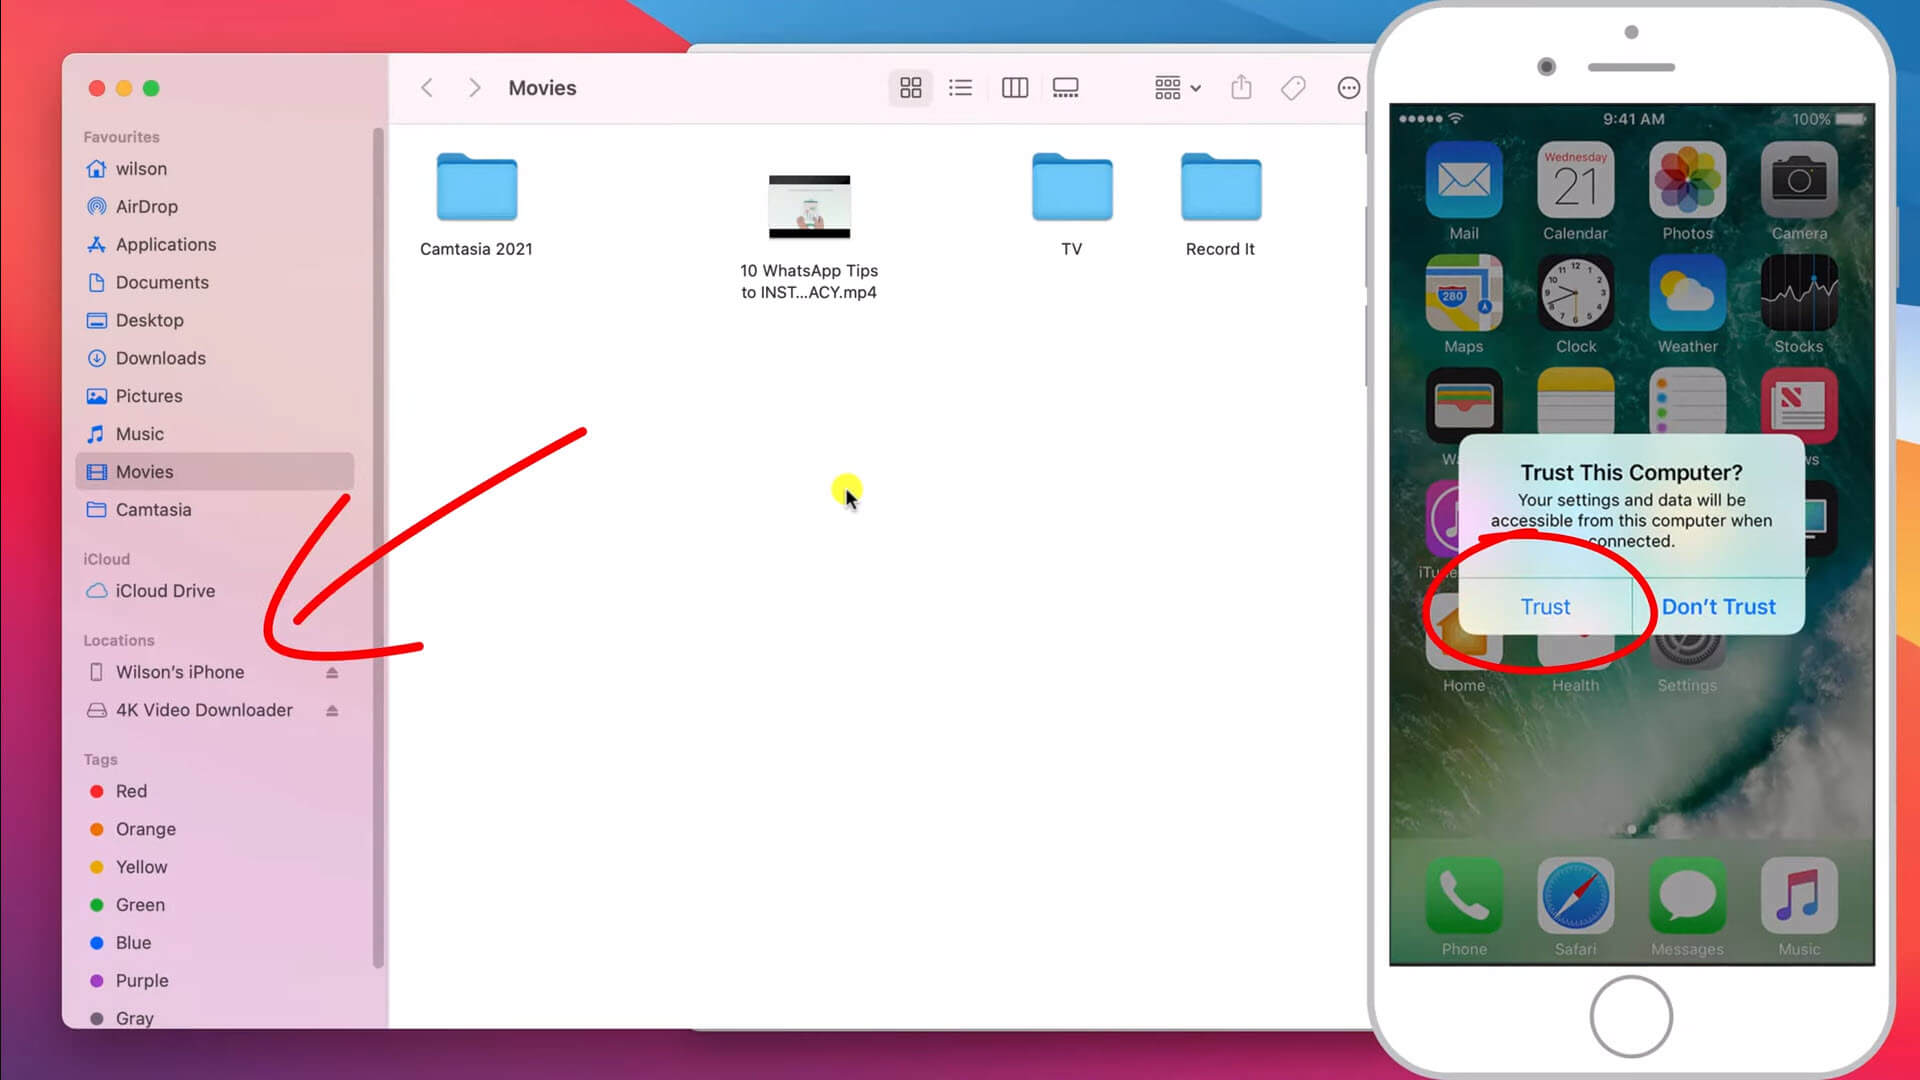 iphone connected to mac in finder window